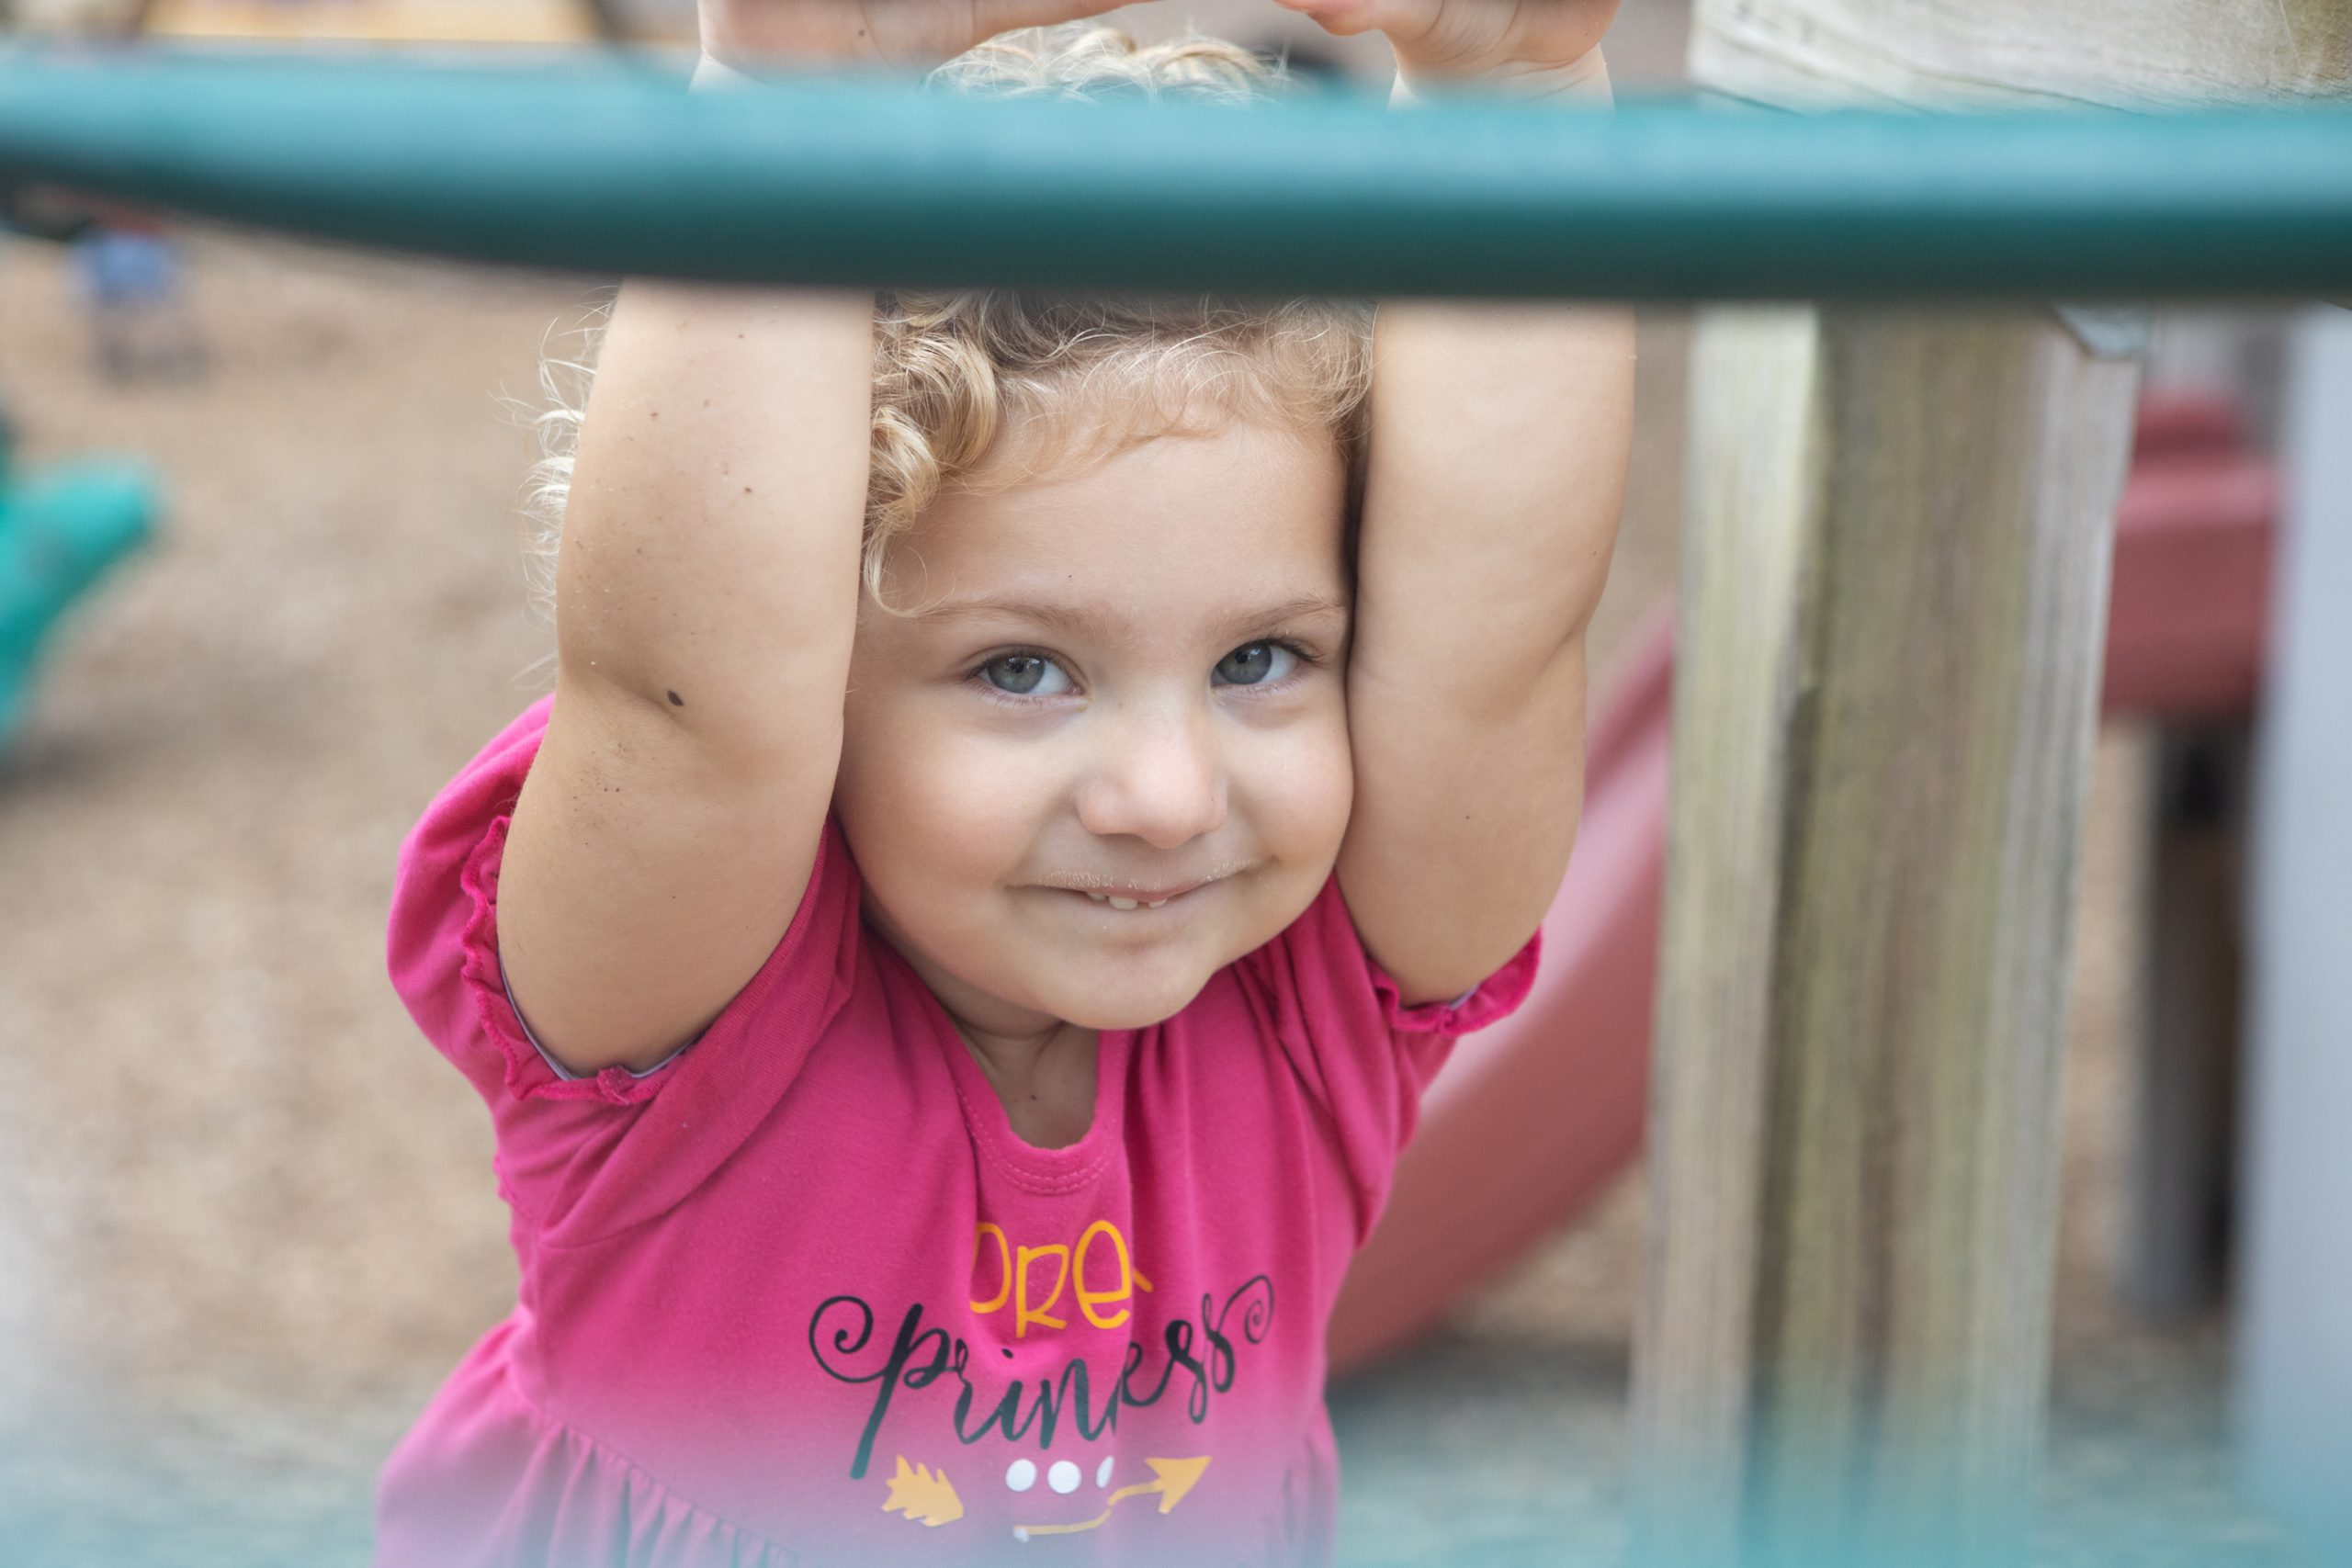 Adorable child looks out from under a rail on the playground